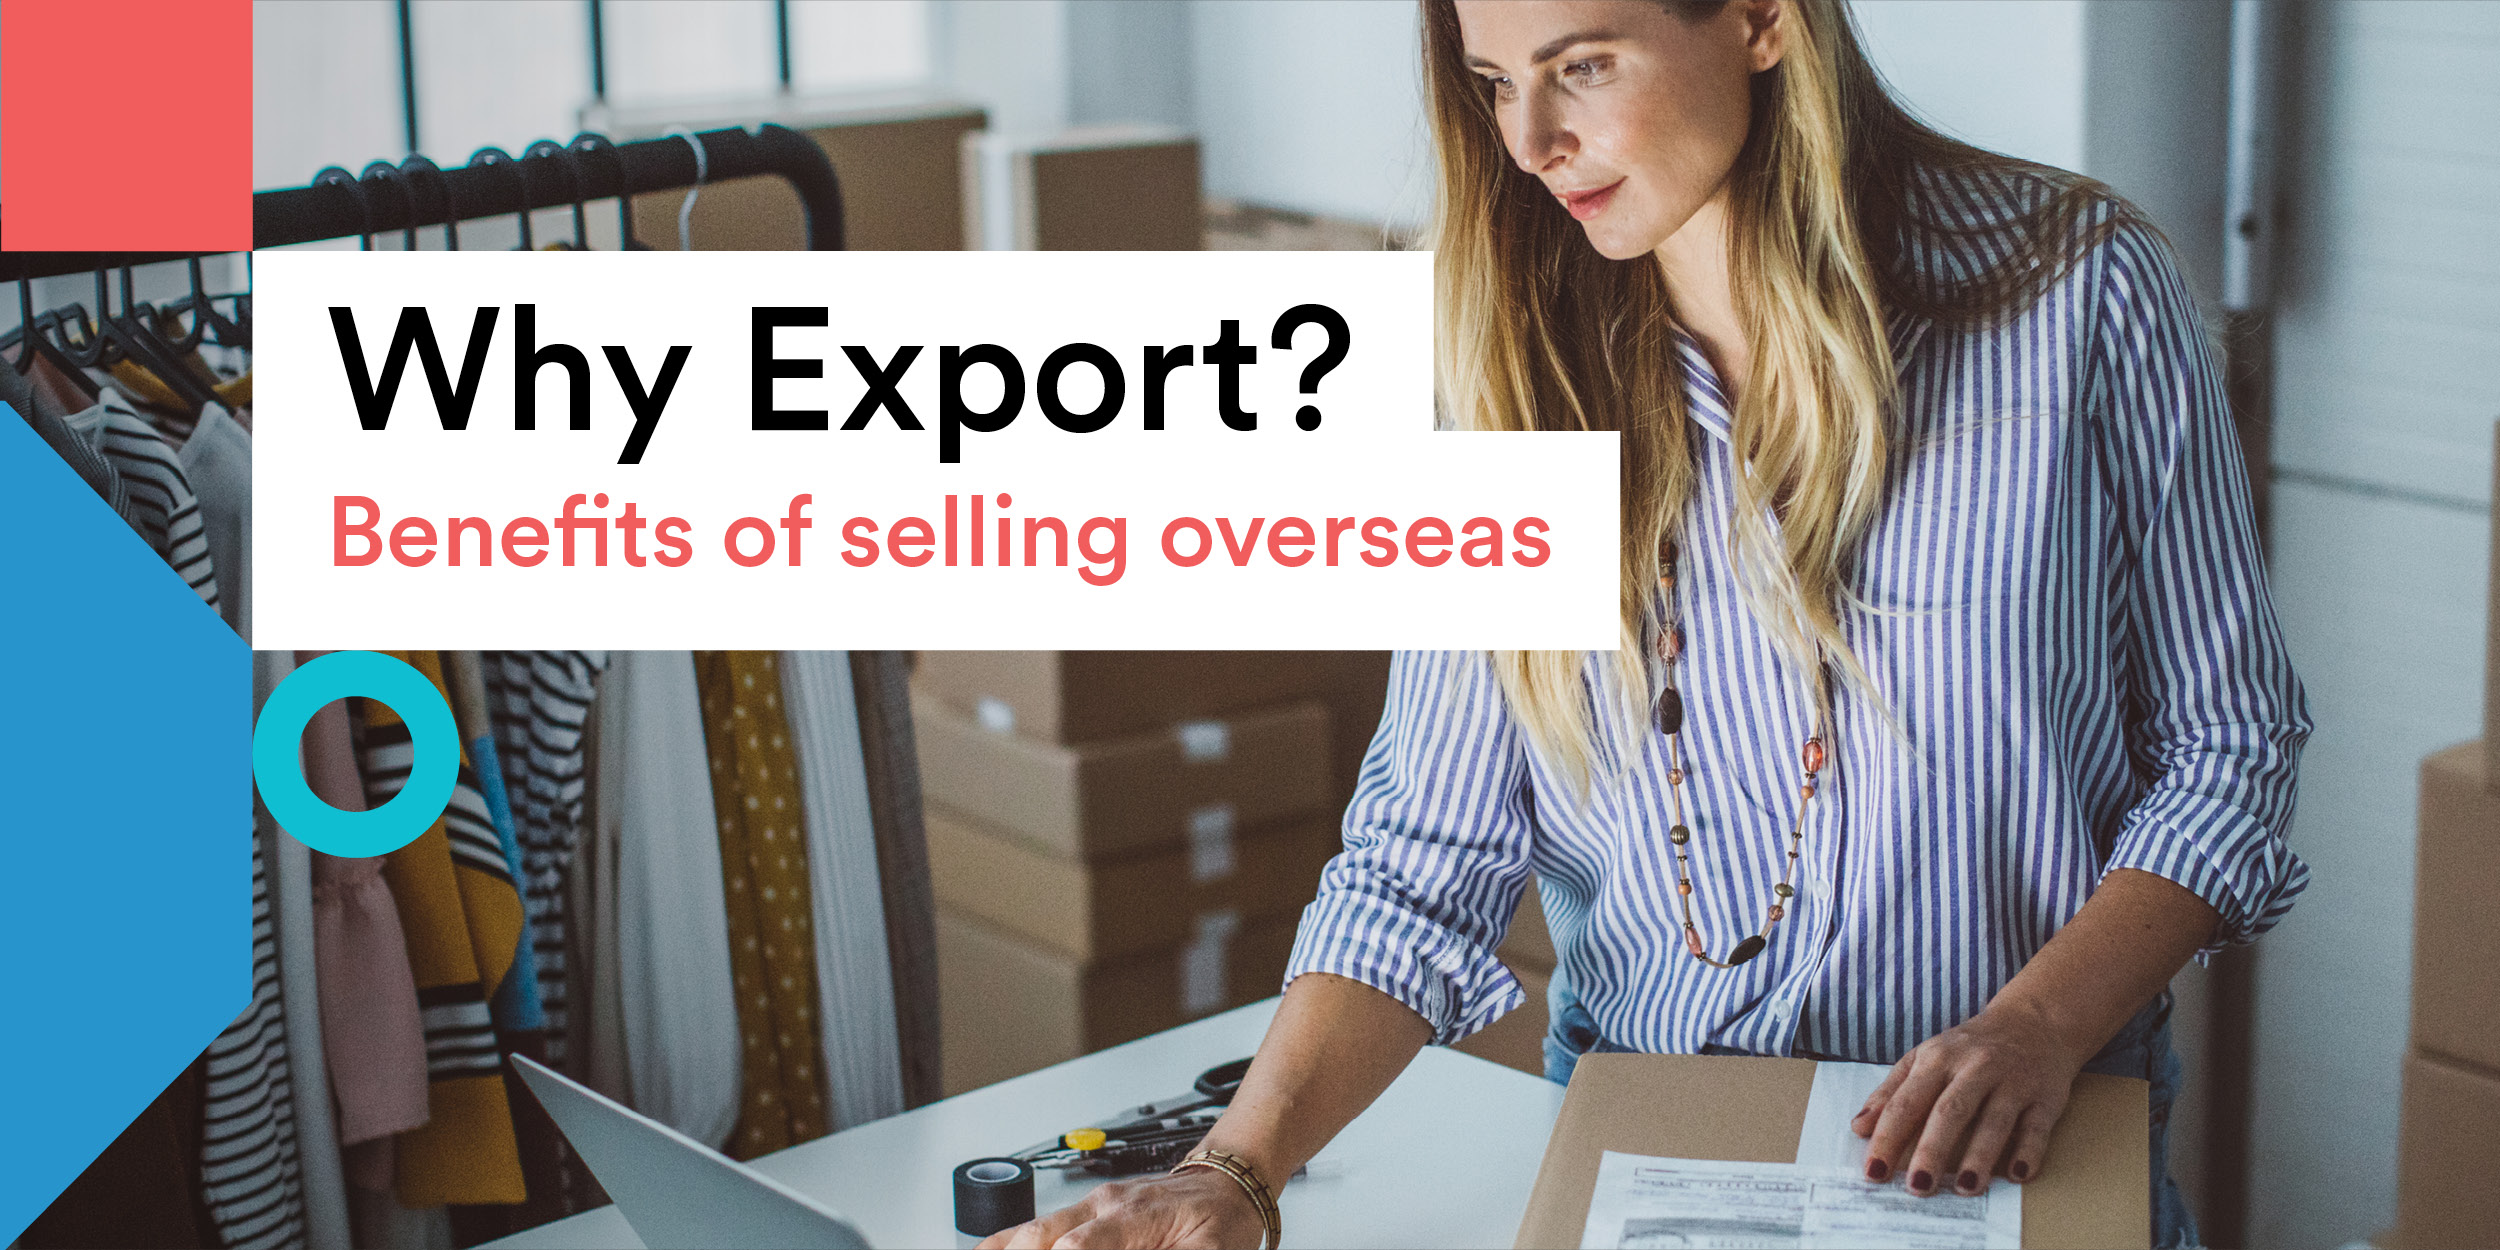 Why Export title - image of woman packing a box